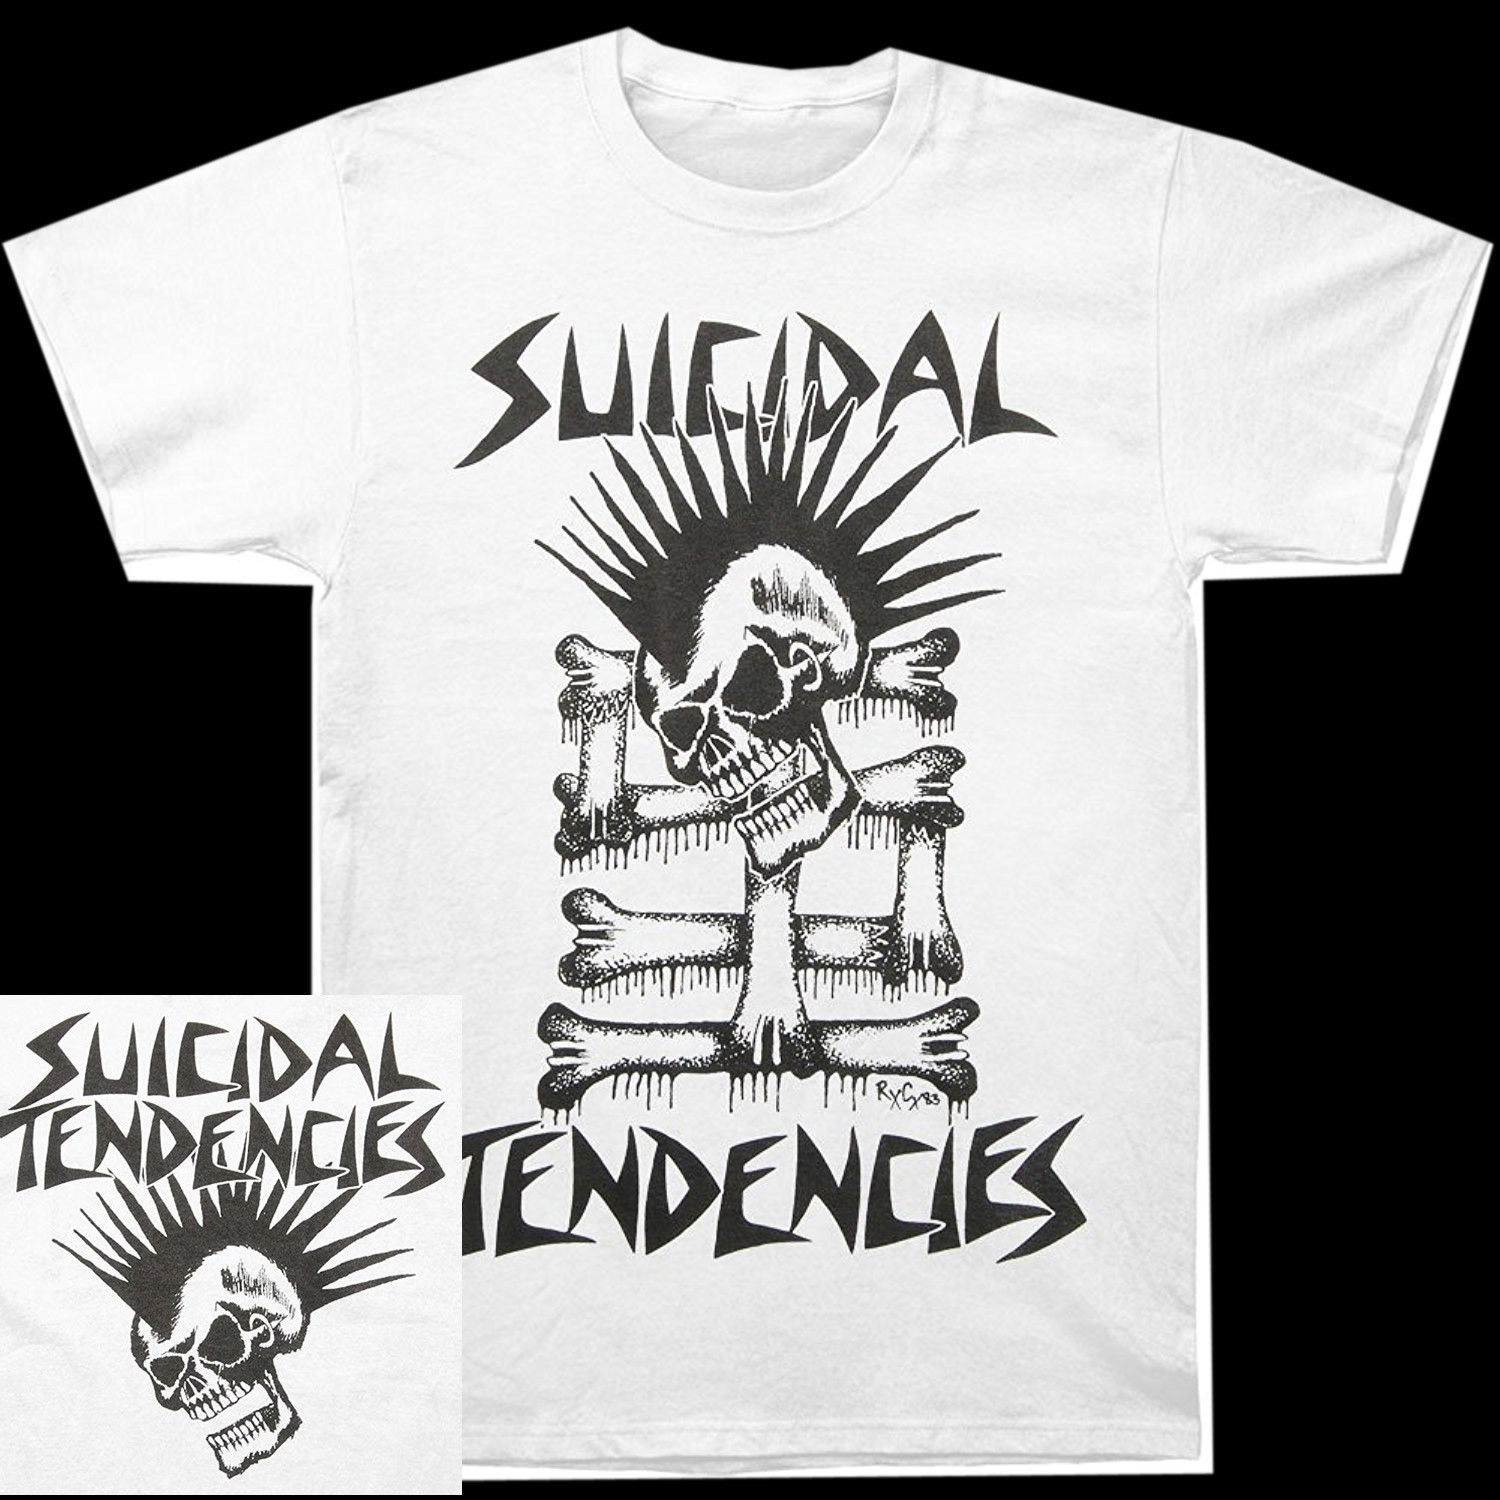 Selbstmord Trends Mohawk Schädel Weiß <font><b>Shirt</b></font> S <font><b>M</b></font> L XL XXL 3xl <font><b>T</b></font>-<font><b>shirt</b></font> Officil <font><b>T</b></font>-<font><b>Shirt</b></font> image